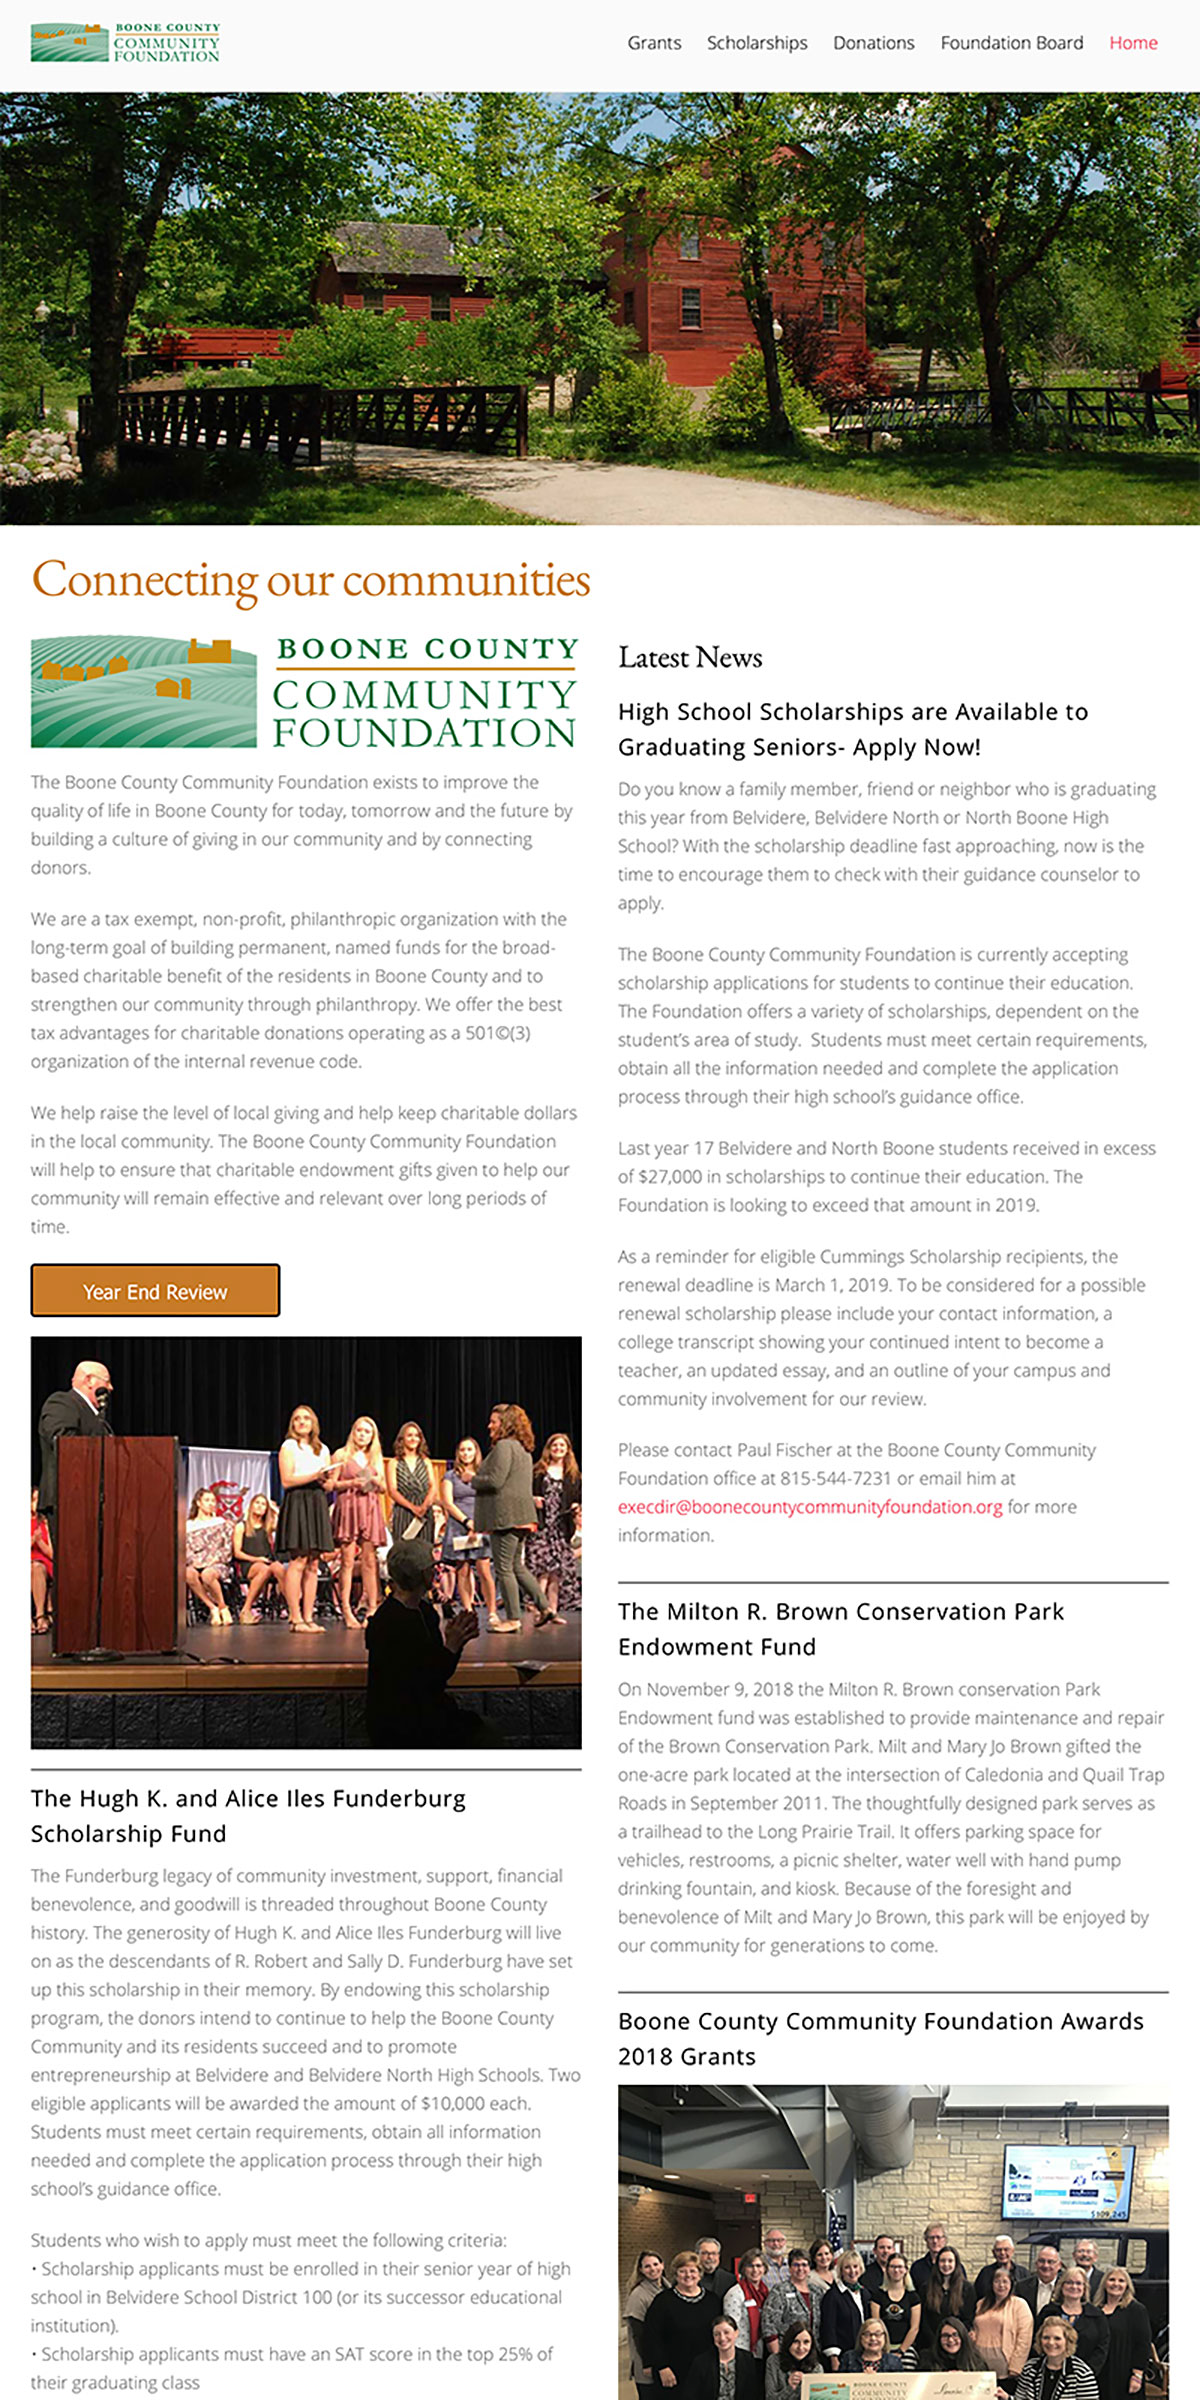 Boone County community Foundation website